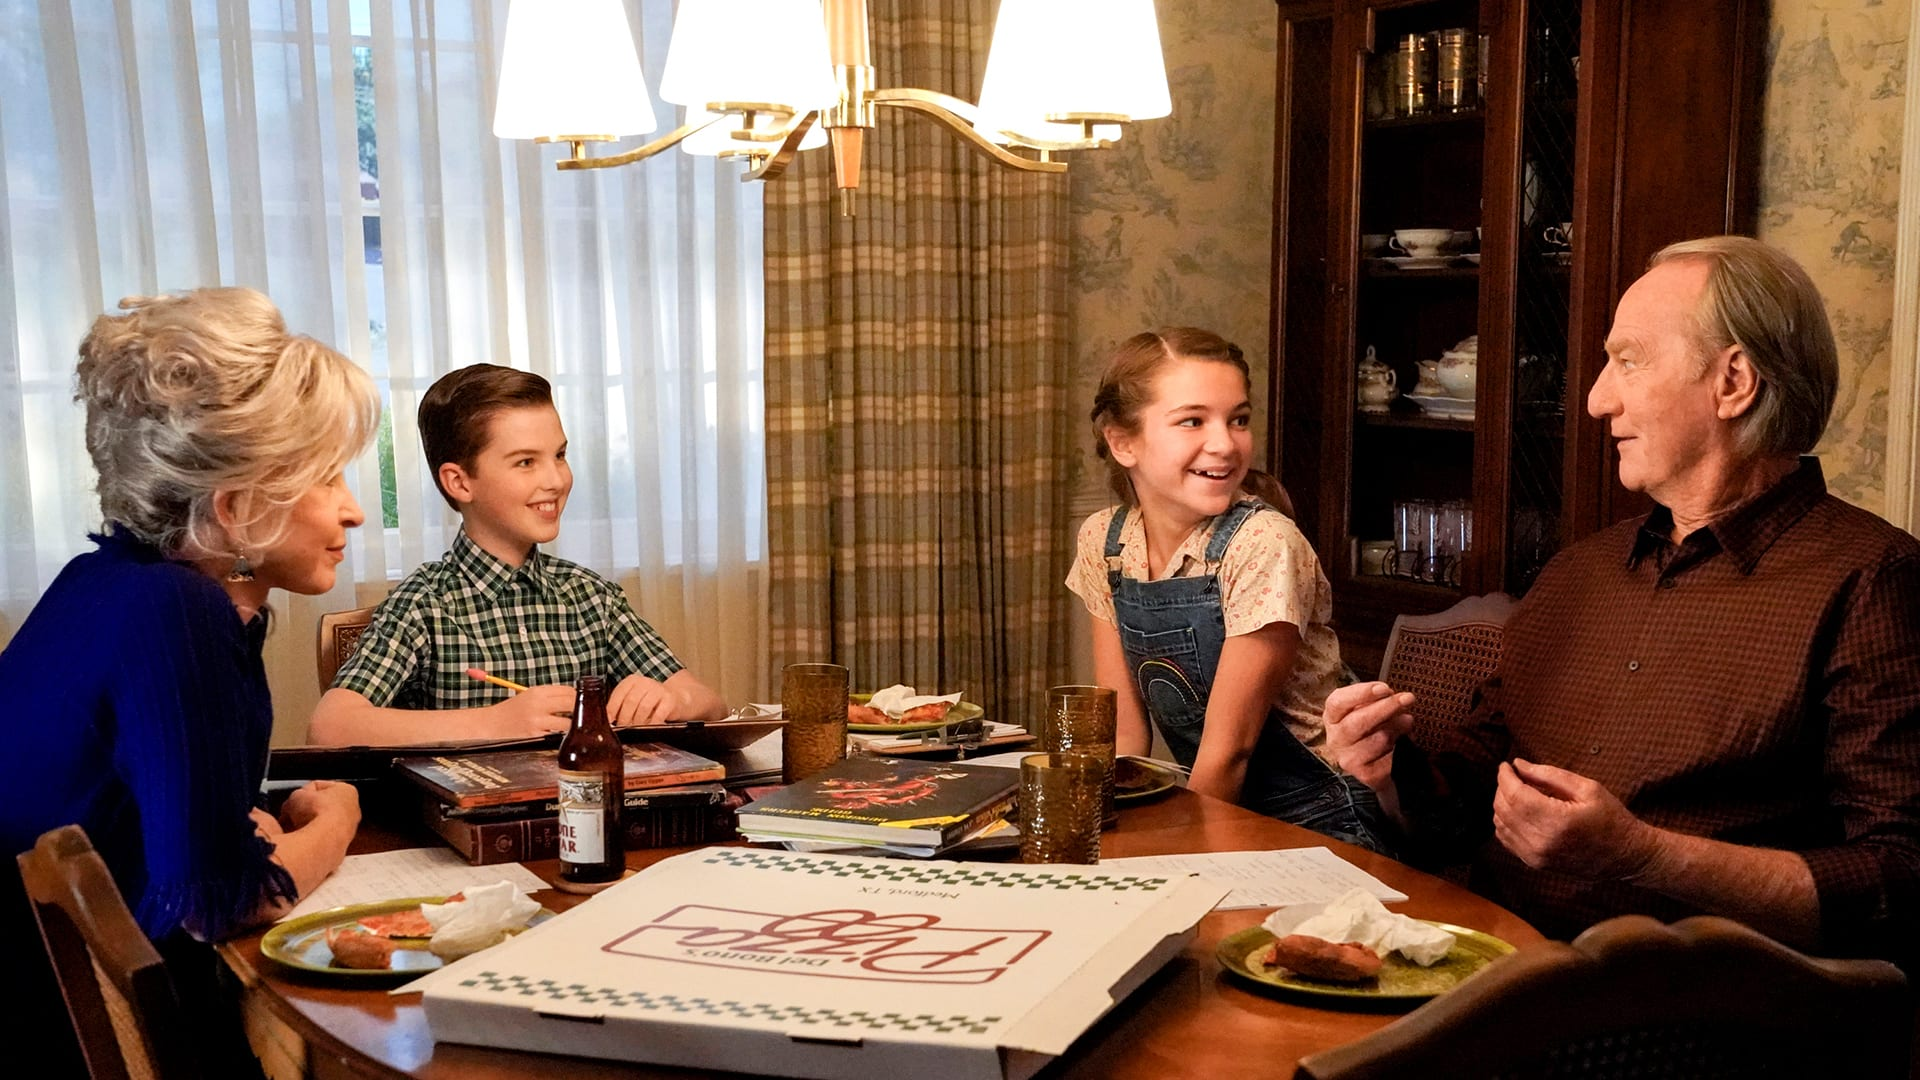 Young Sheldon Season 4 Episode 16 Release Date and Spoilers